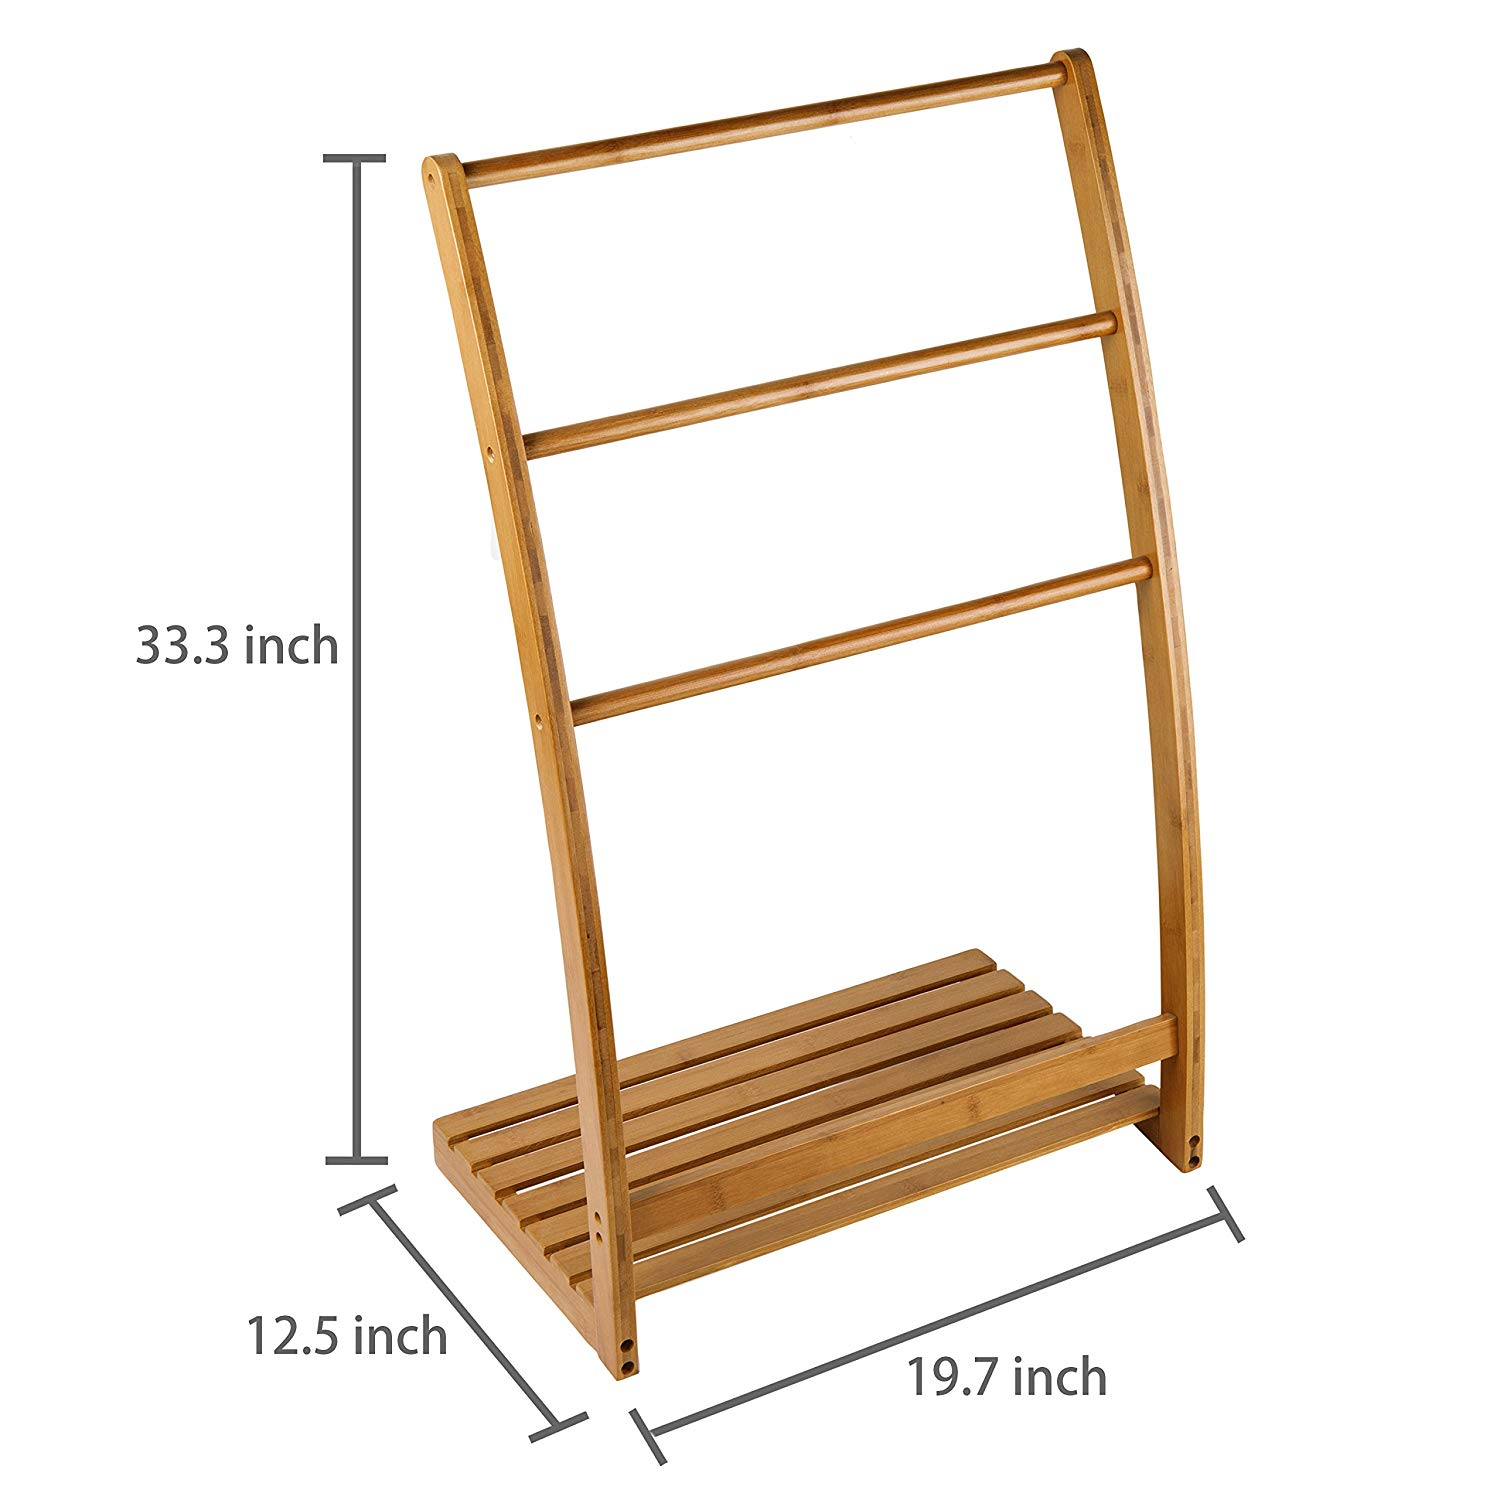 Freestanding Standing Wood Corner Towel Holder Bamboo Ladder Stand Bathroom Racks Rack